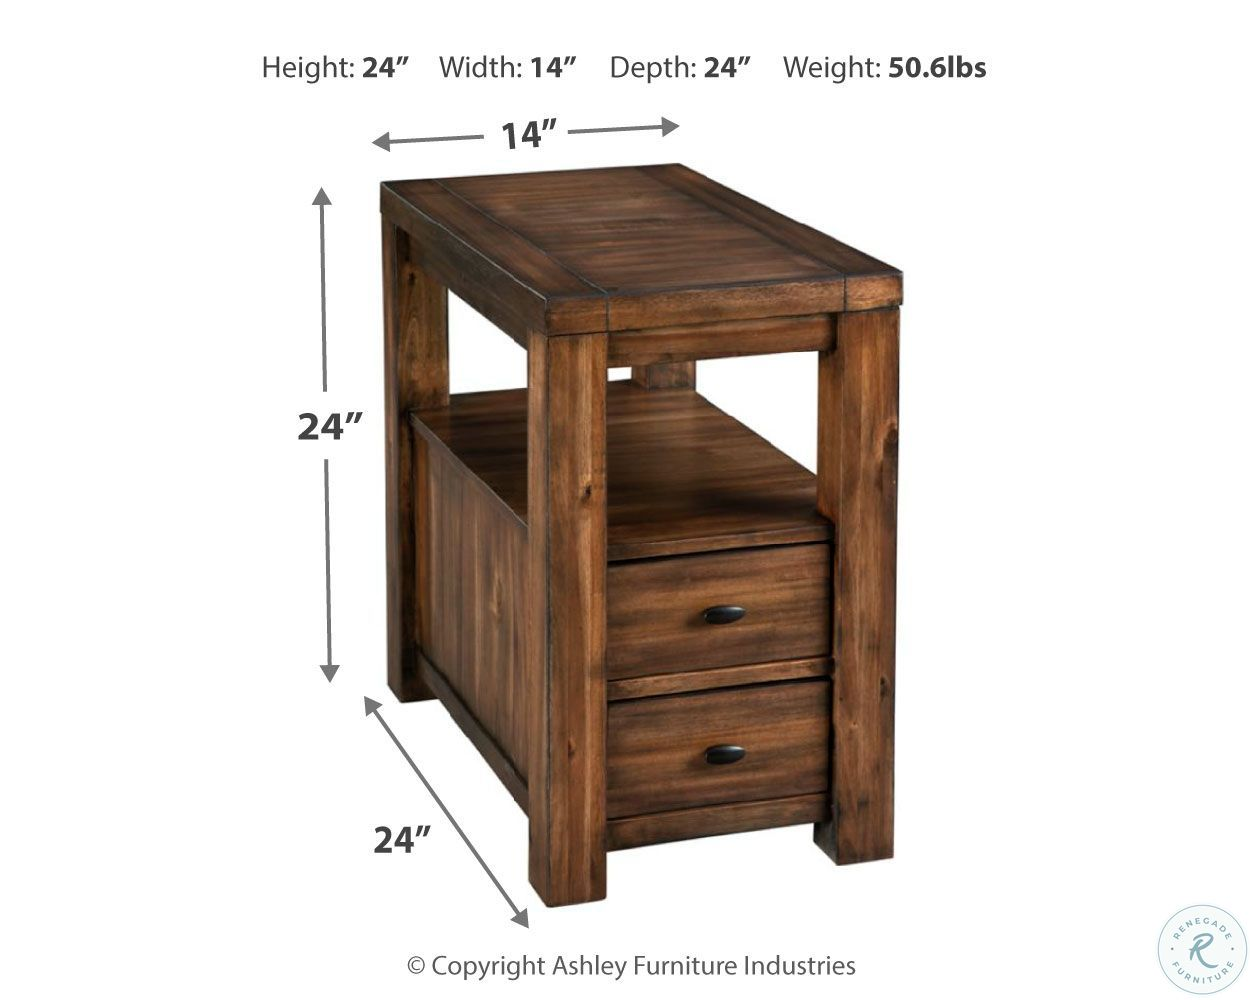 Marleza Brown Chairside End Table From Ashley Coleman Furniture